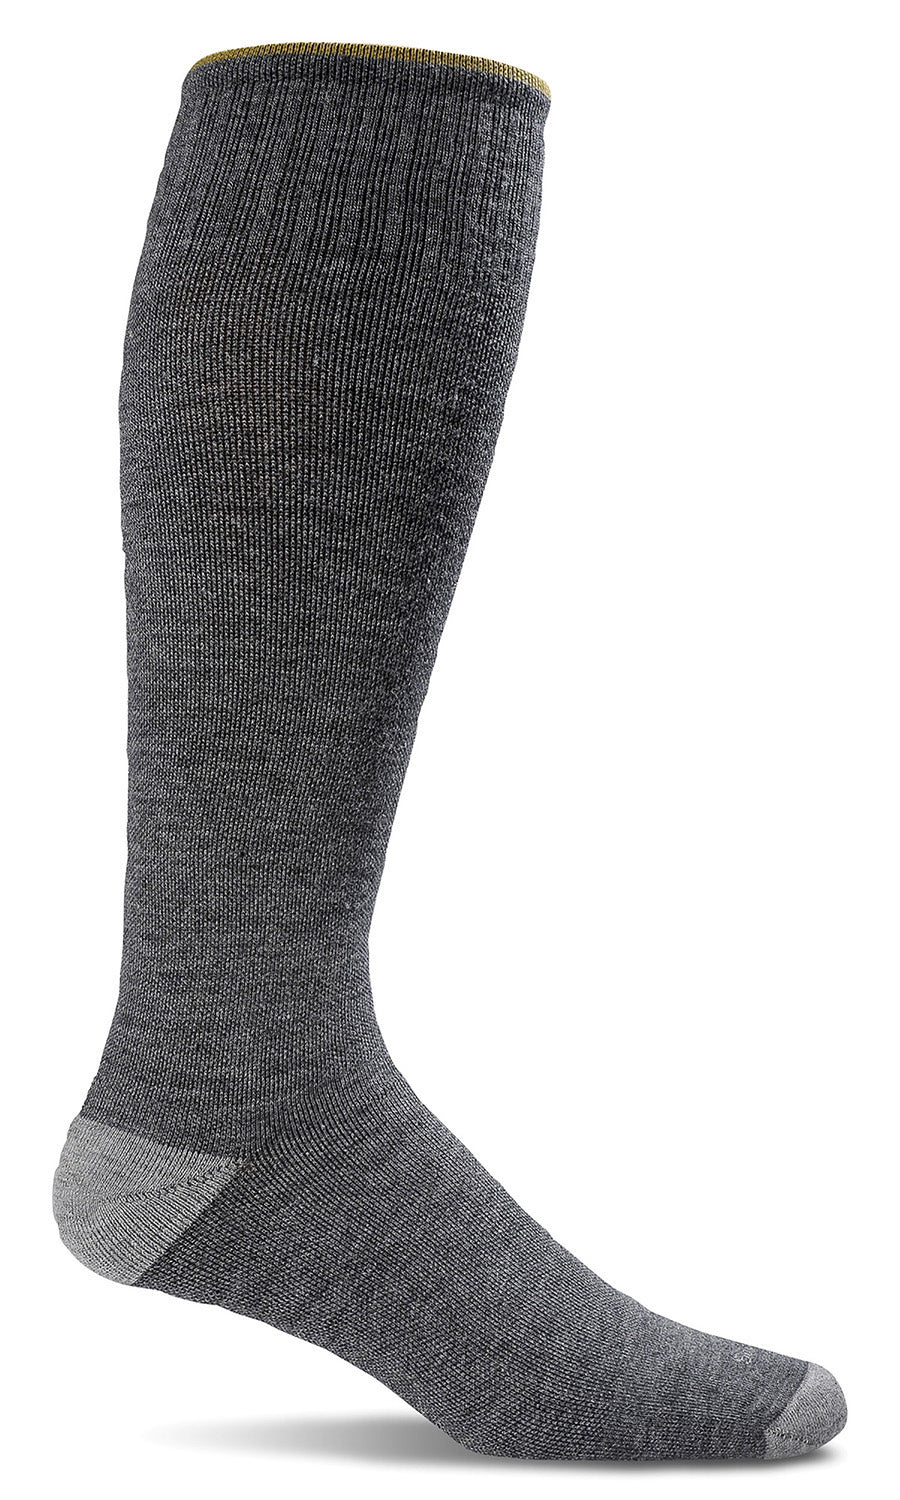 Elevation Knee-High - Grey Firm Compression (20-30mmHG)